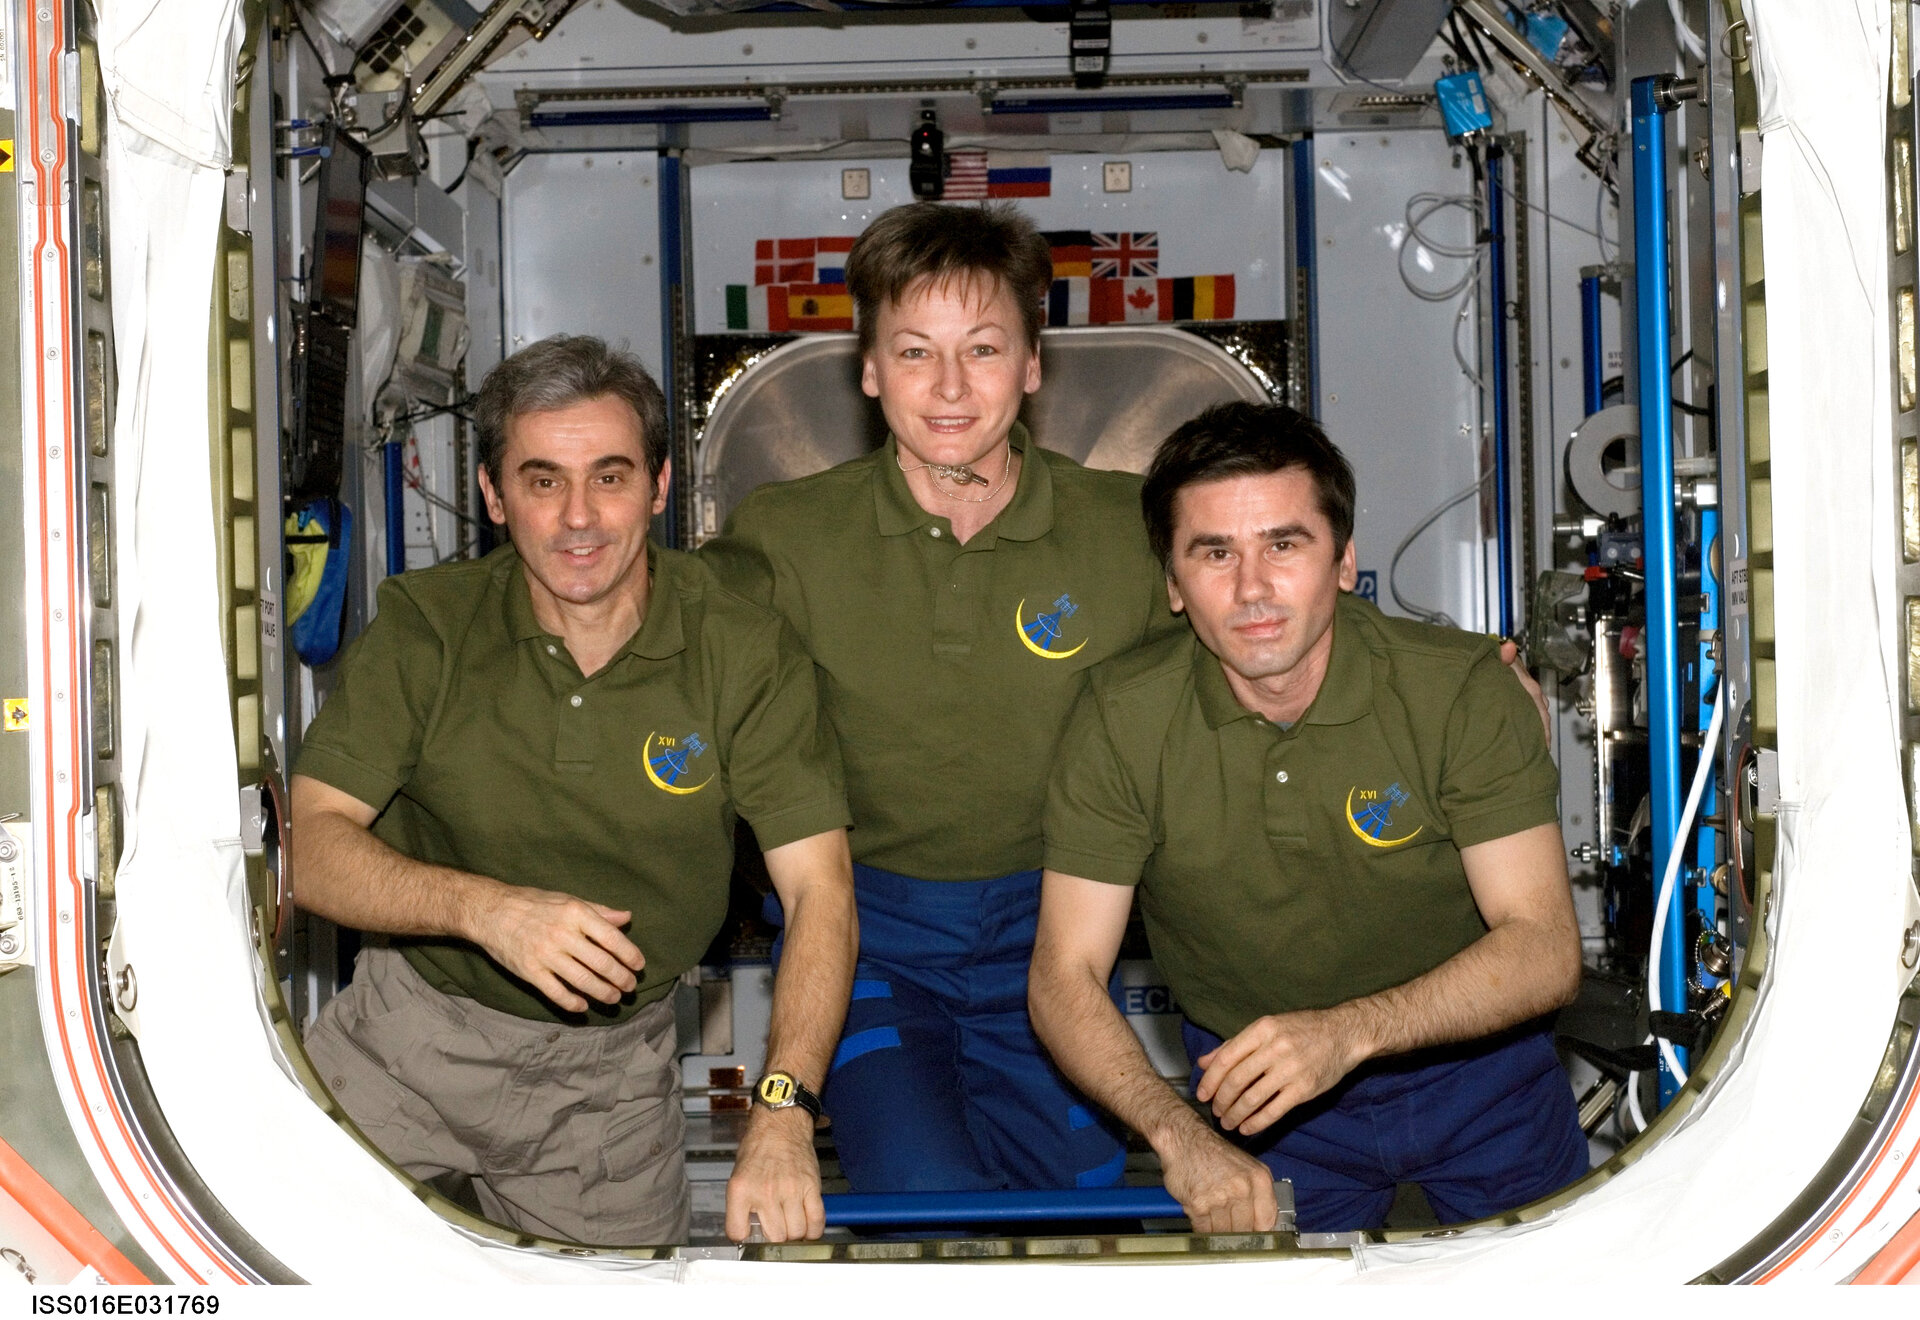 Leopold Eyharts poses with his ISS crewmates Peggy Whitson and Yuri Malenchenko